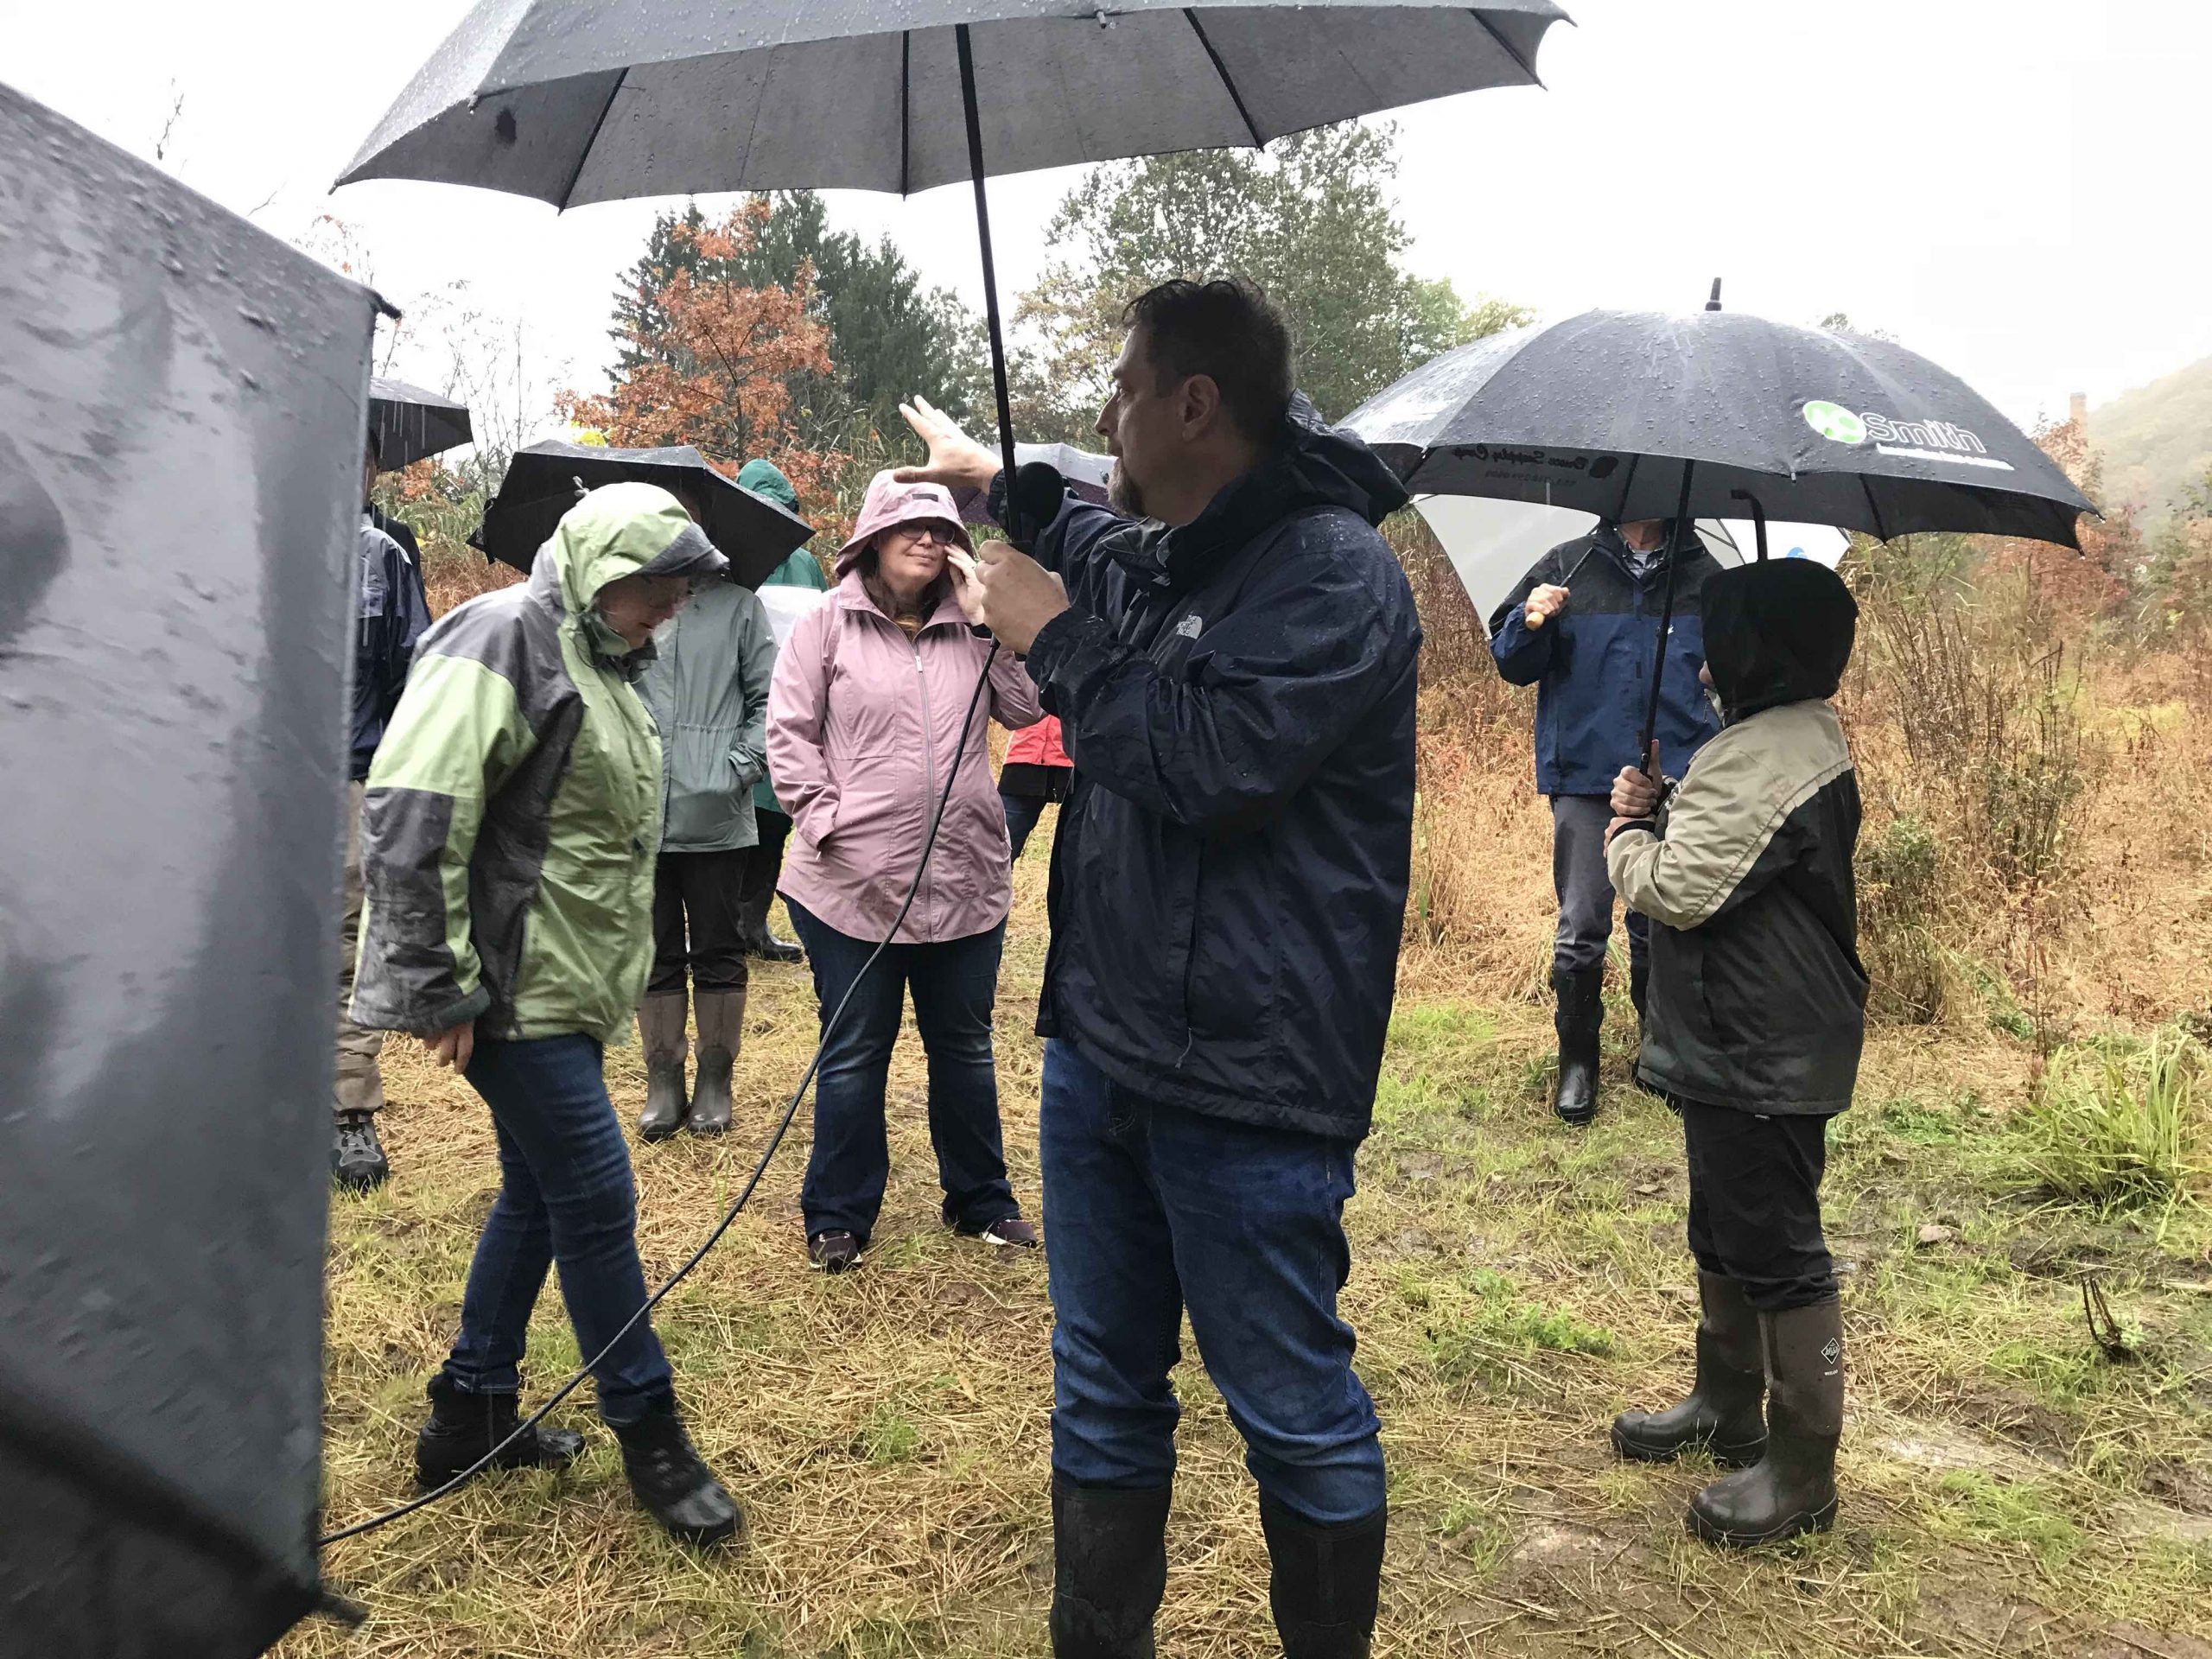 Princeton Hydro President Geoff Goll, P.E. provides field trip participants with information about the Hughesville Dam removal project and the adaptive management work currently happening at the site.